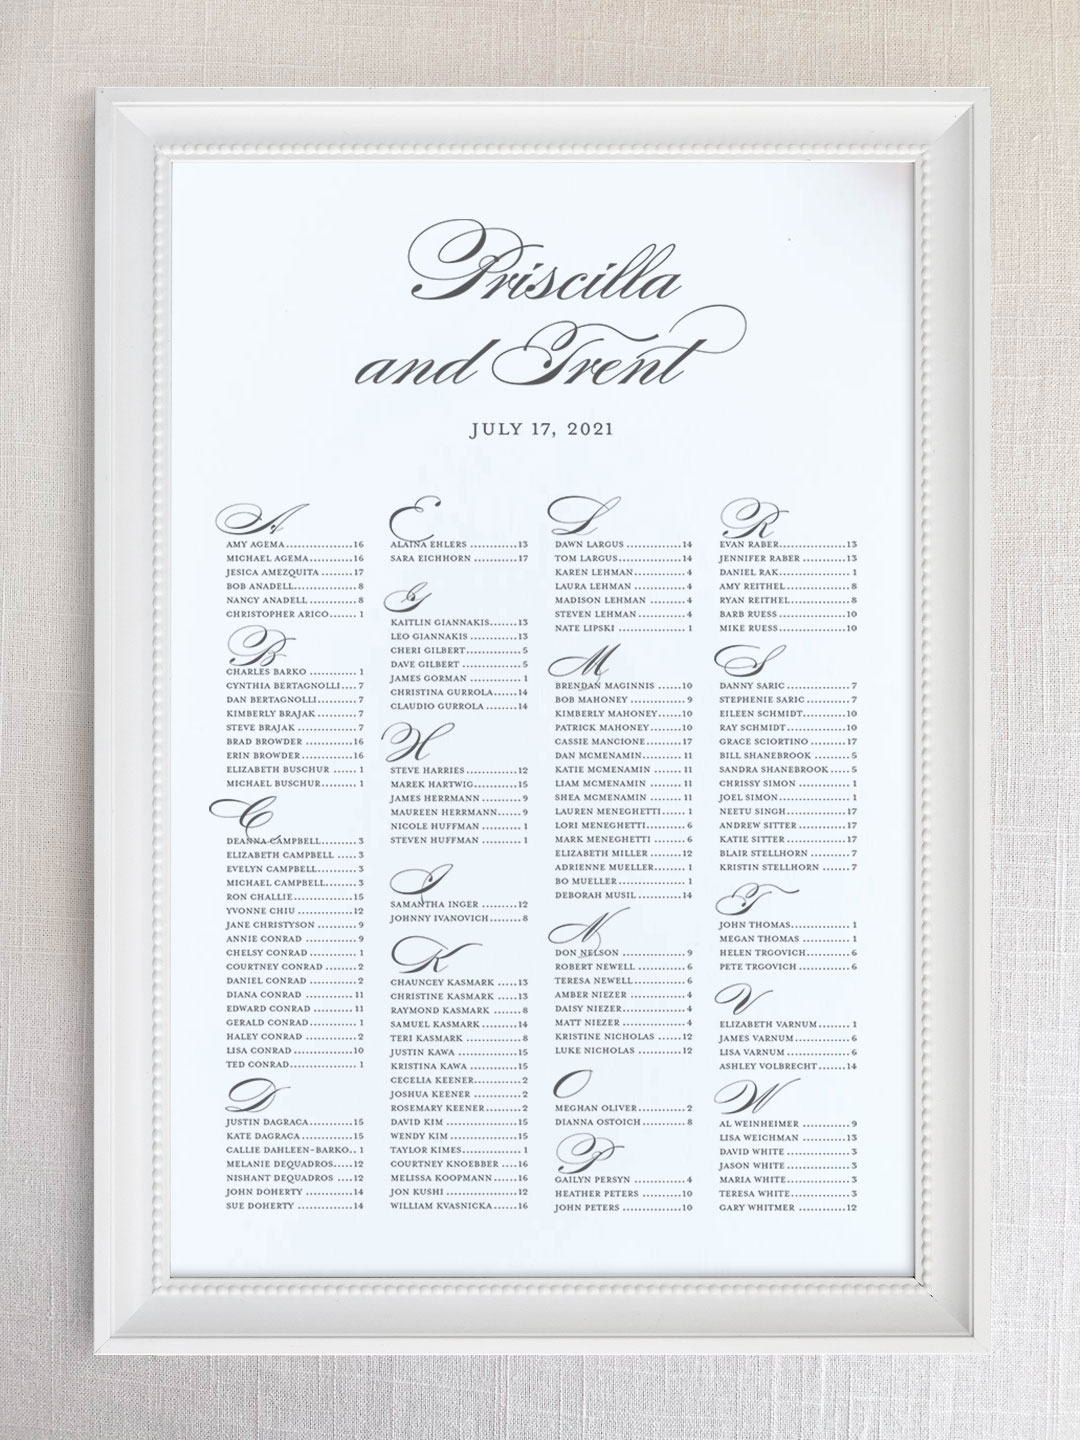 Wedding seating chart with formal script font organized alphabetically.